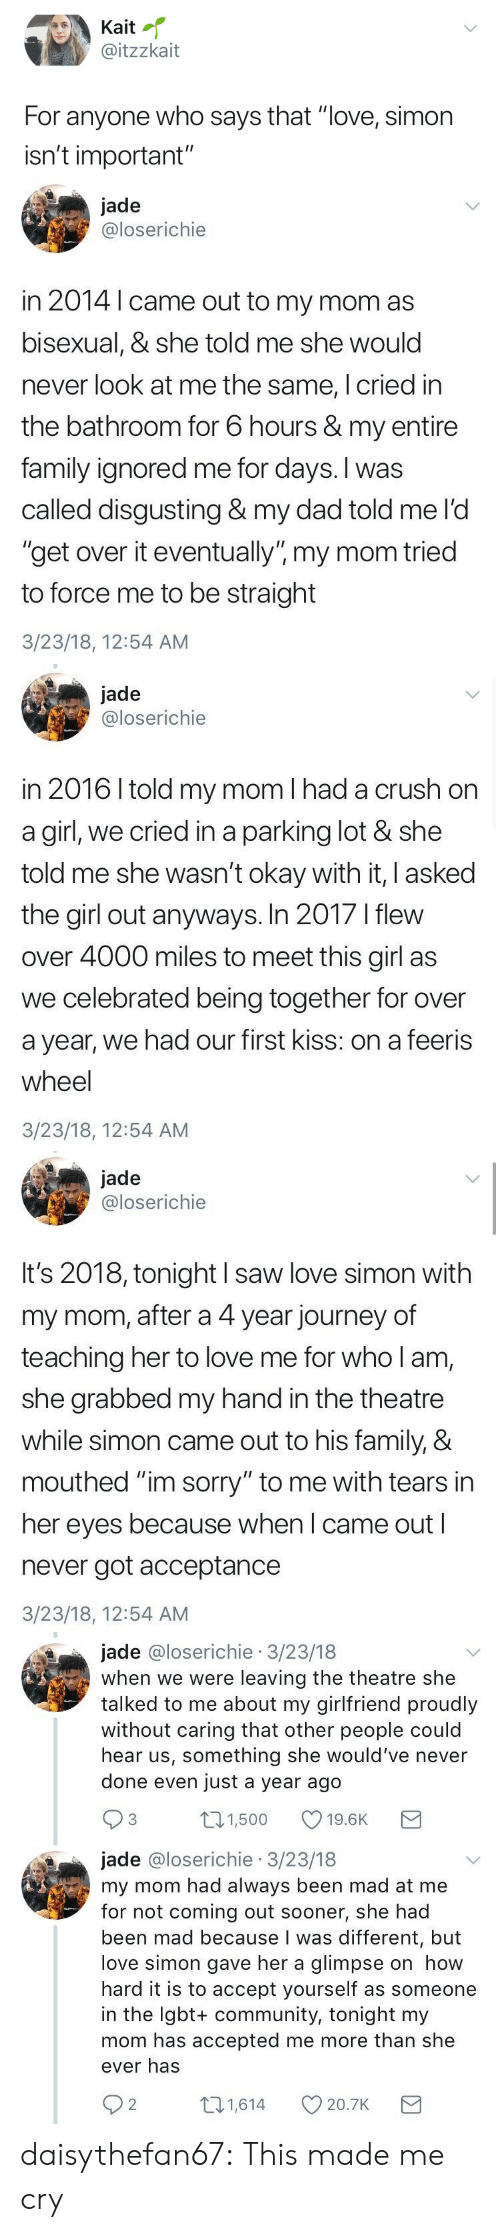 """first kiss: Kaitl  @itzzkait  For anyone who says that """"love, simon  isn't important""""   jade  @loserichie  in 2014 l came out to my mom as  bisexual, & she told me she would  never look at me the same, I cried in  the bathroom for 6 hours & my entire  family ignored me for days. I was  called disgusting & my dad told me l'd  """"get over it eventually"""" my mom tried  to force me to be straight  3/23/18, 12:54 AM   jade  @loserichie  in 2016 I told my mom I had a crush on  a girl, we cried in a parking lot & she  told me she wasn't okay with it, I asked  the girl out anyways. In 2017 I flew  over 4000 miles to meet this girl as  we celebrated being together for over  a year, we had our first kiss: on a feeris  wheel  3/23/18, 12:54 AM   jade  @loserichie  It's 2018, tonight I saw love simon with  my mom, after a 4 year journey of  teaching her to love me for who l am,  she grabbed my hand in the theatre  while simon came out to his family, &  mouthed """"im sorry"""" to me with tears in  her eyes because when I came out l  never got acceptance  3/23/18, 12:54 AM   jade @loserichie 3/23/18  when we were leaving the theatre she  talked to me about my girlfriend proudly  without caring that other people could  hear us, something she would've never  done even just a year ago  3 ,00 19.6K  jade @loserichie 3/23/18  my mom had always been mad at me  for not coming out sooner, she had  been mad because I was different, but  love simon gave her a glimpse on how  hard it is to accept yourself as someone  in the Igbt+ community, tonight my  mom has accepted me more than she  ever has  31,614  614 20.7K D  20.7K  2 daisythefan67: This made me cry"""